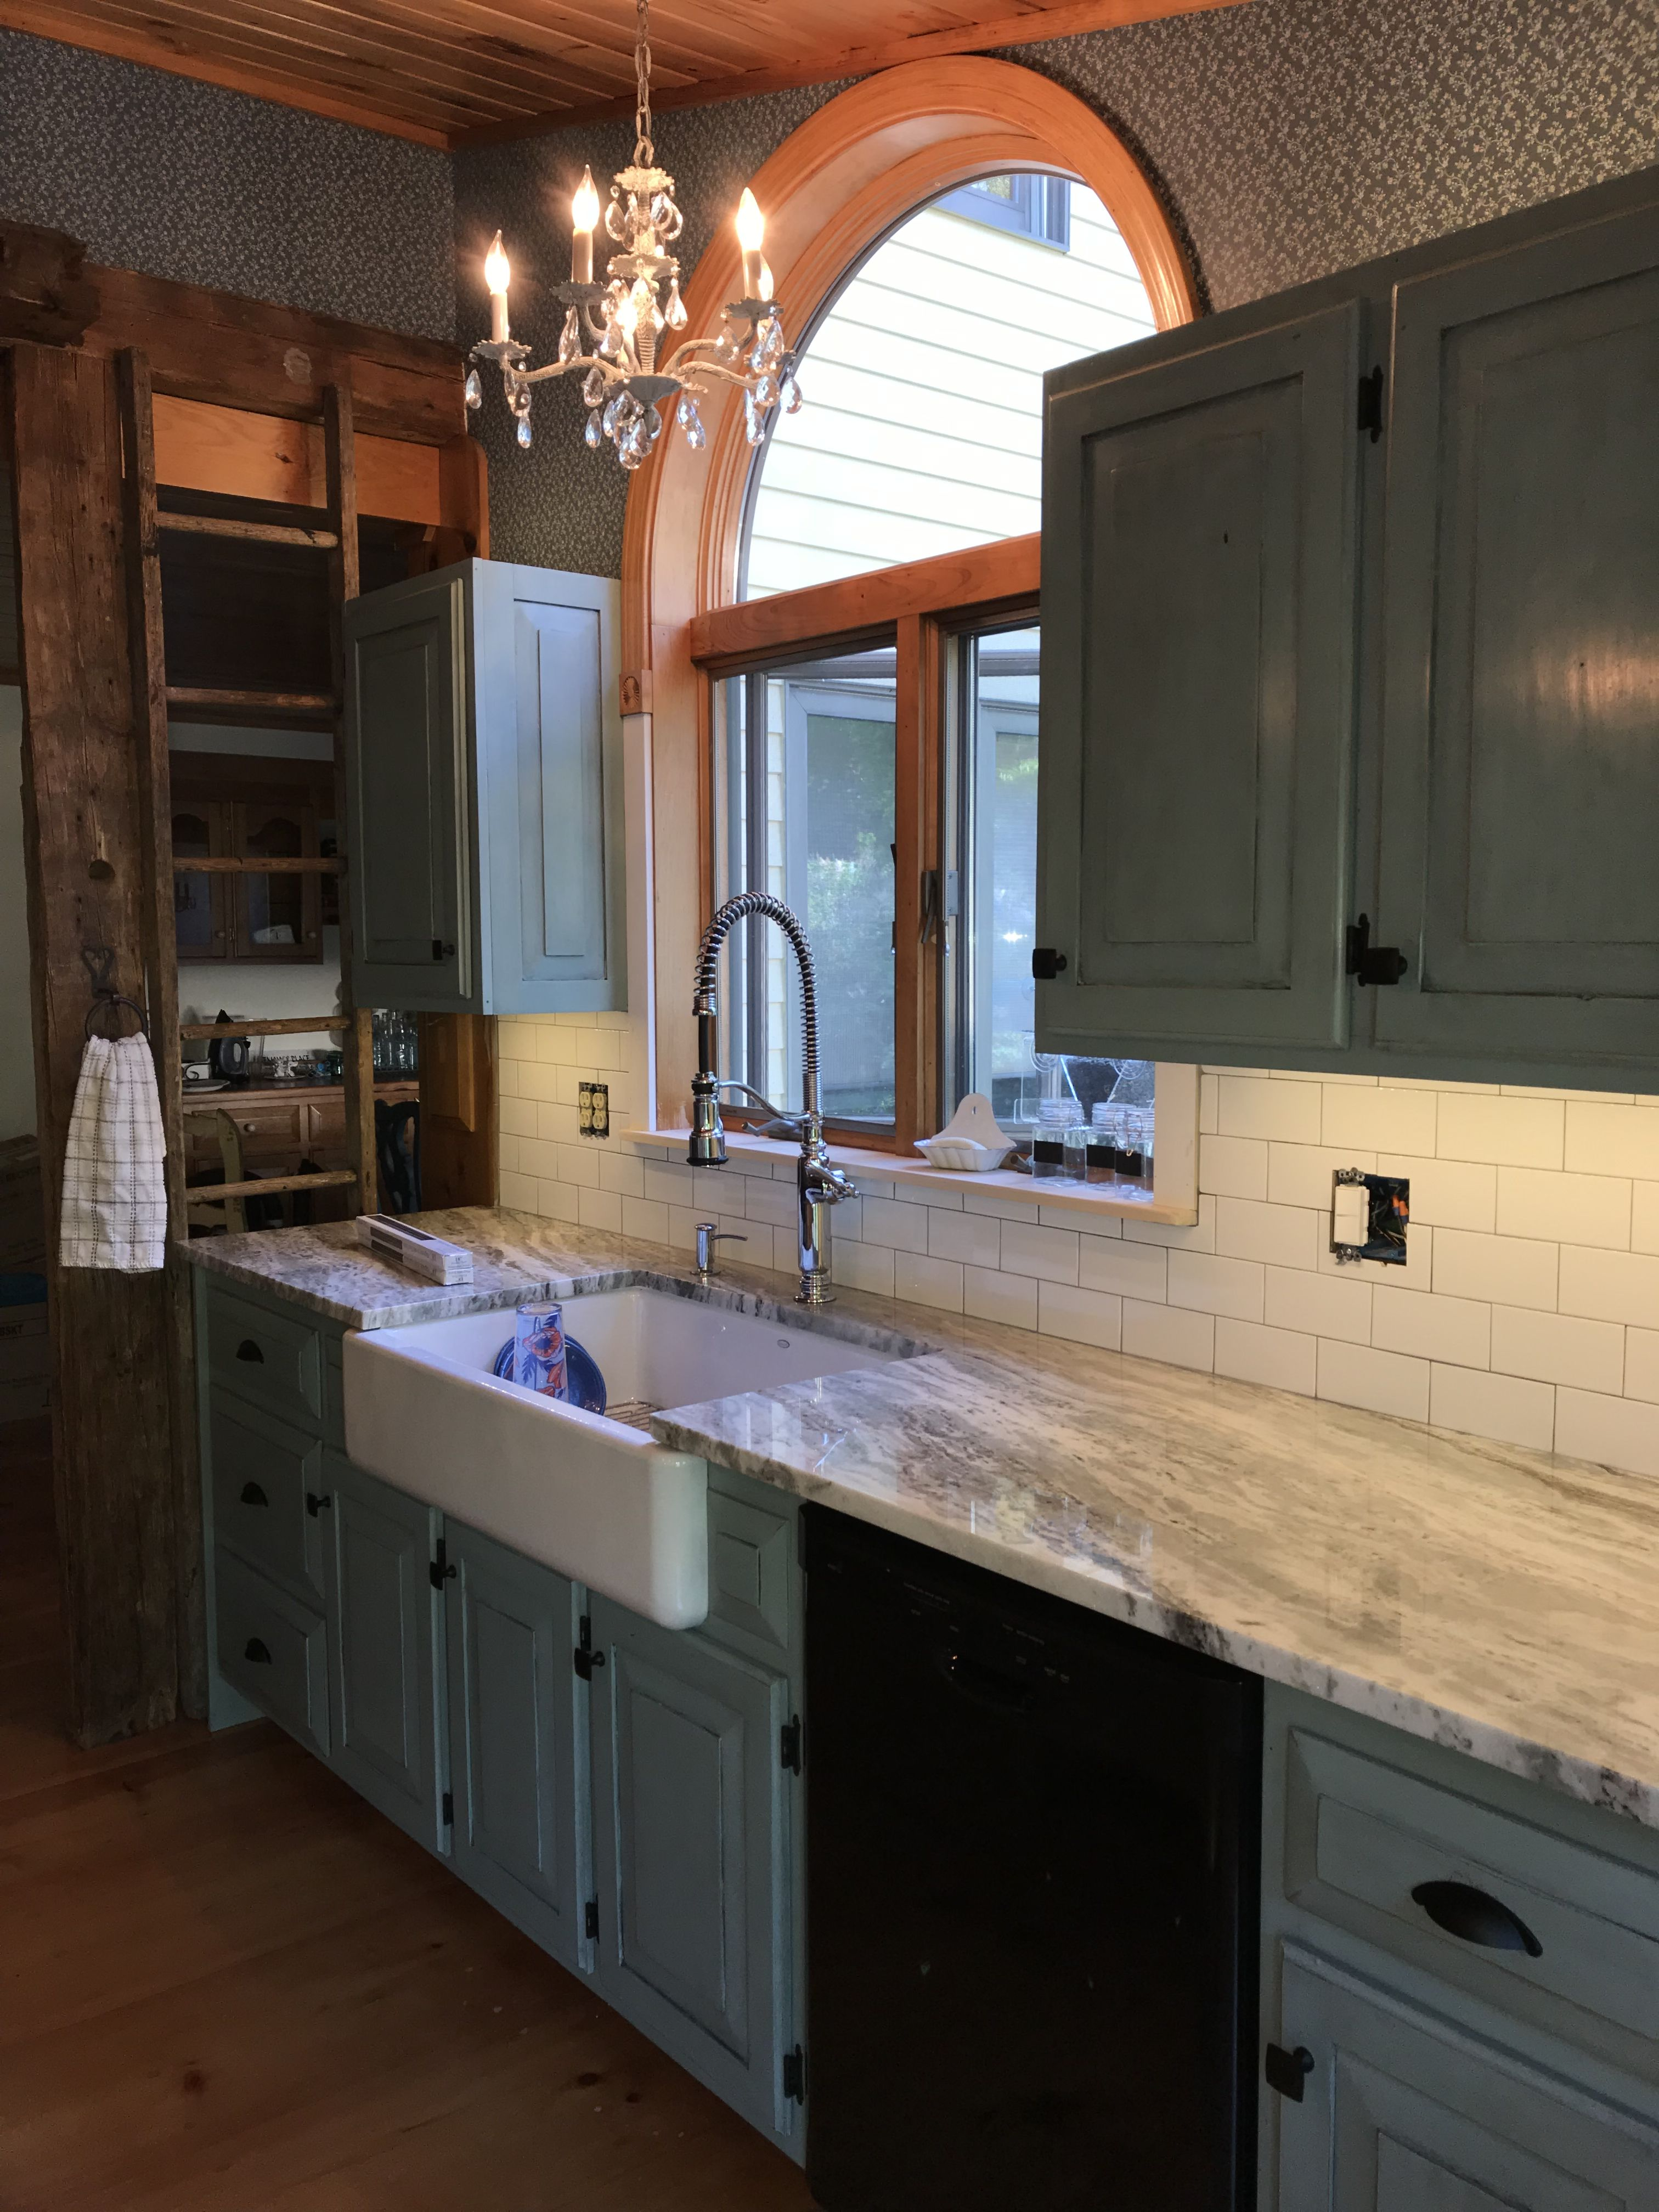 Chalk Painted kitchen cabinets Duck Egg Blue with Black ...